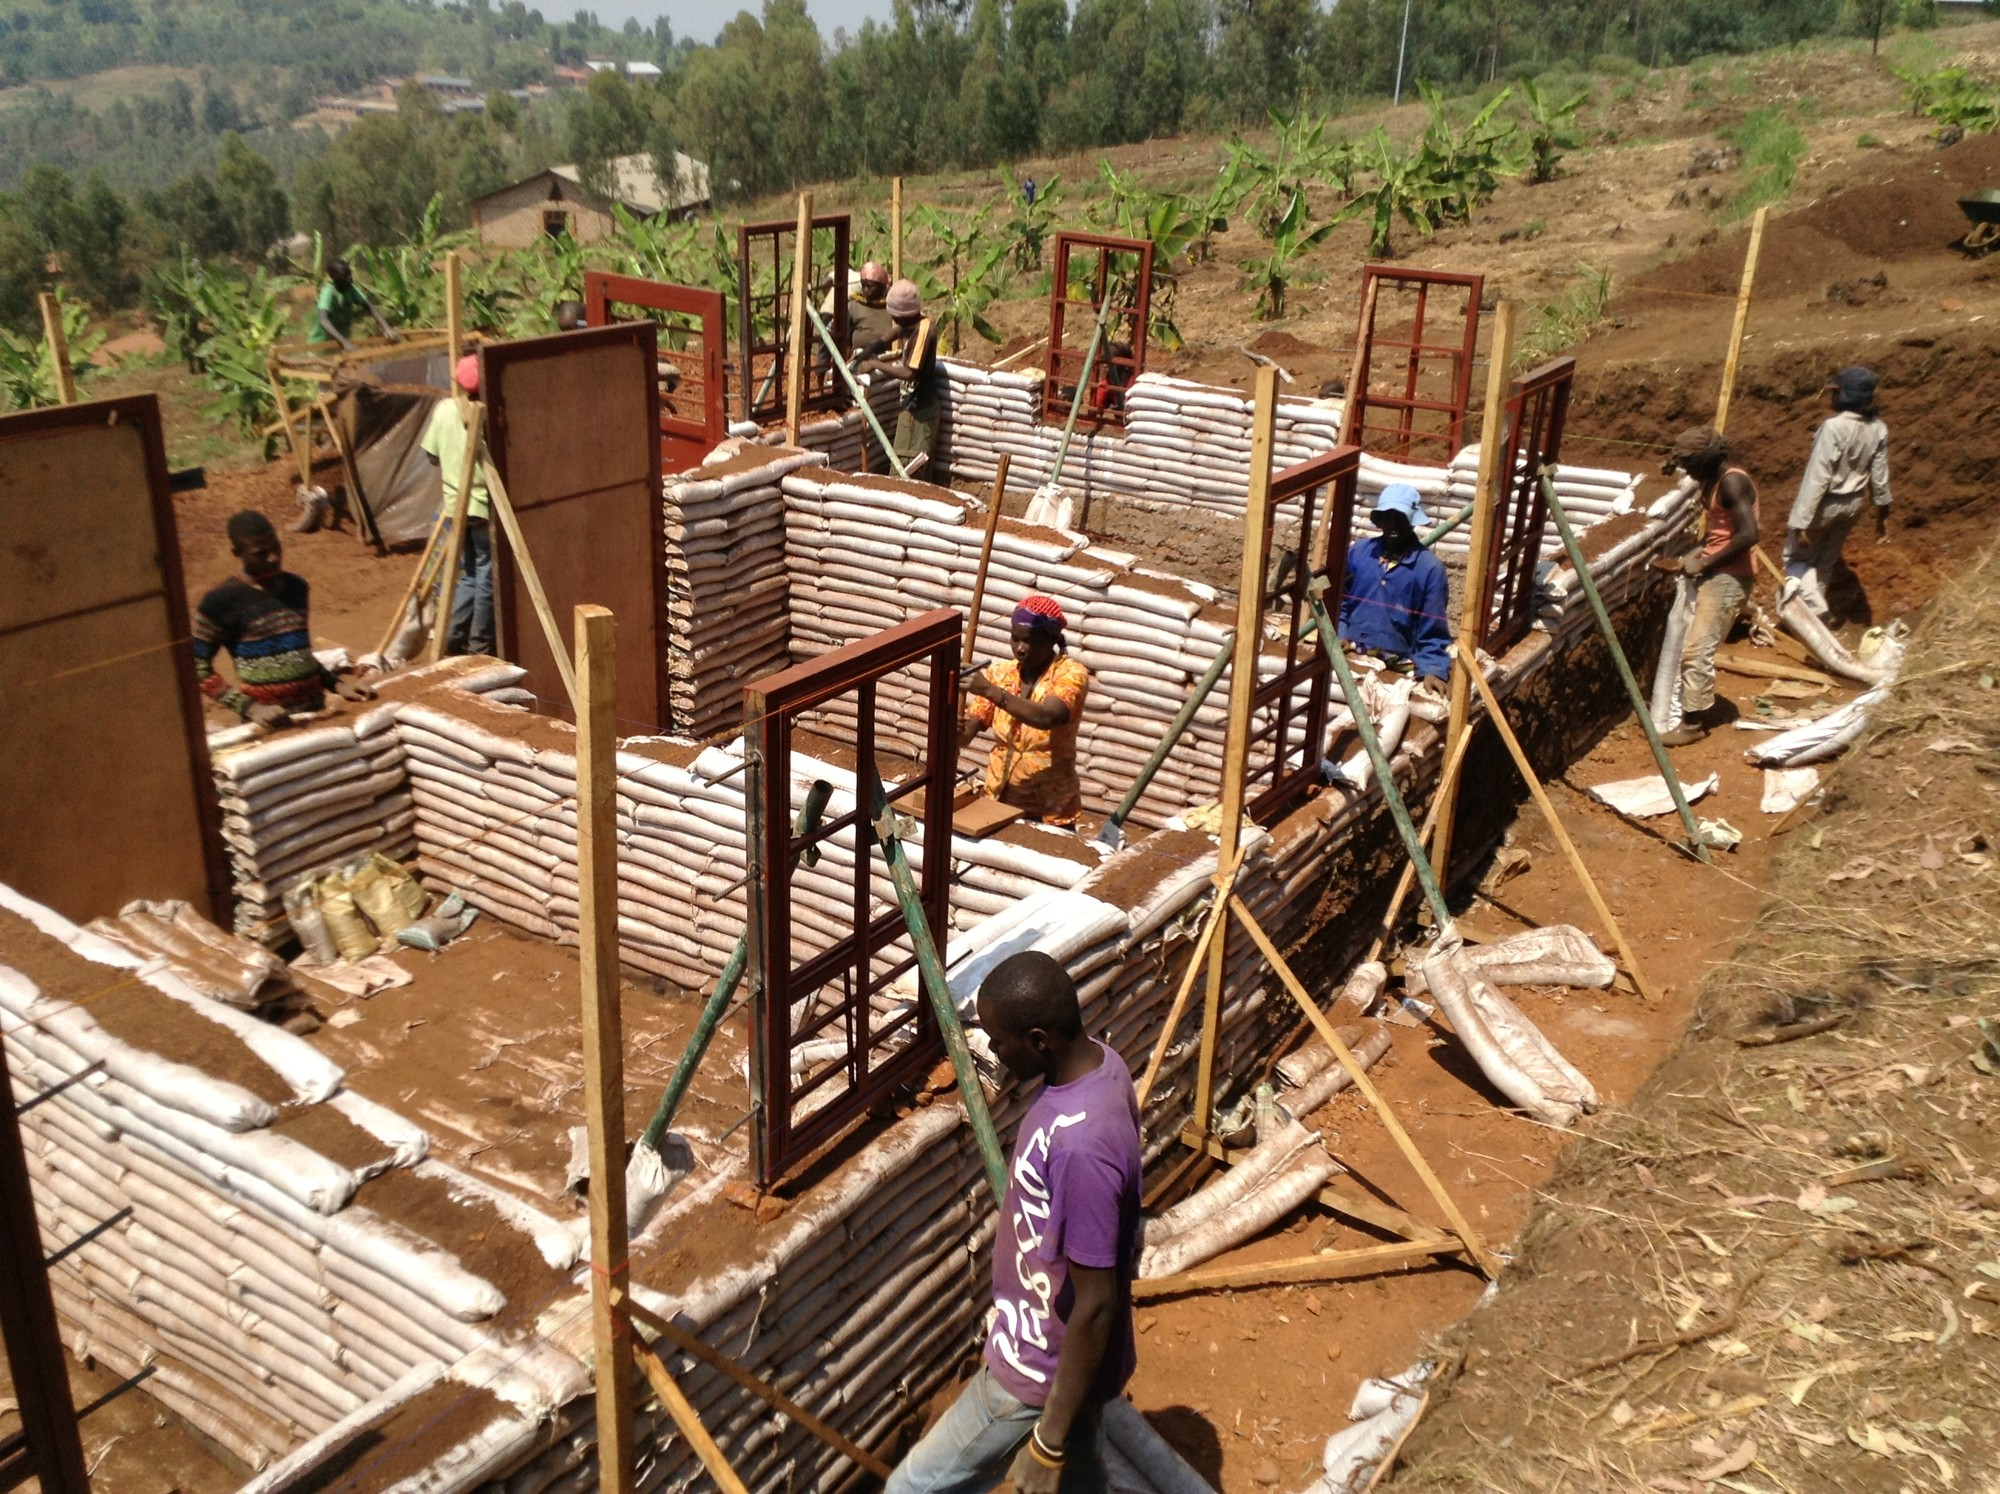 With earthbag construction knowledge, the designers hope to empower the clients with an inexpensive and speedy construction technique. Construction of the Masoro Village Project took approximately two months. Image © Yutaka Sho